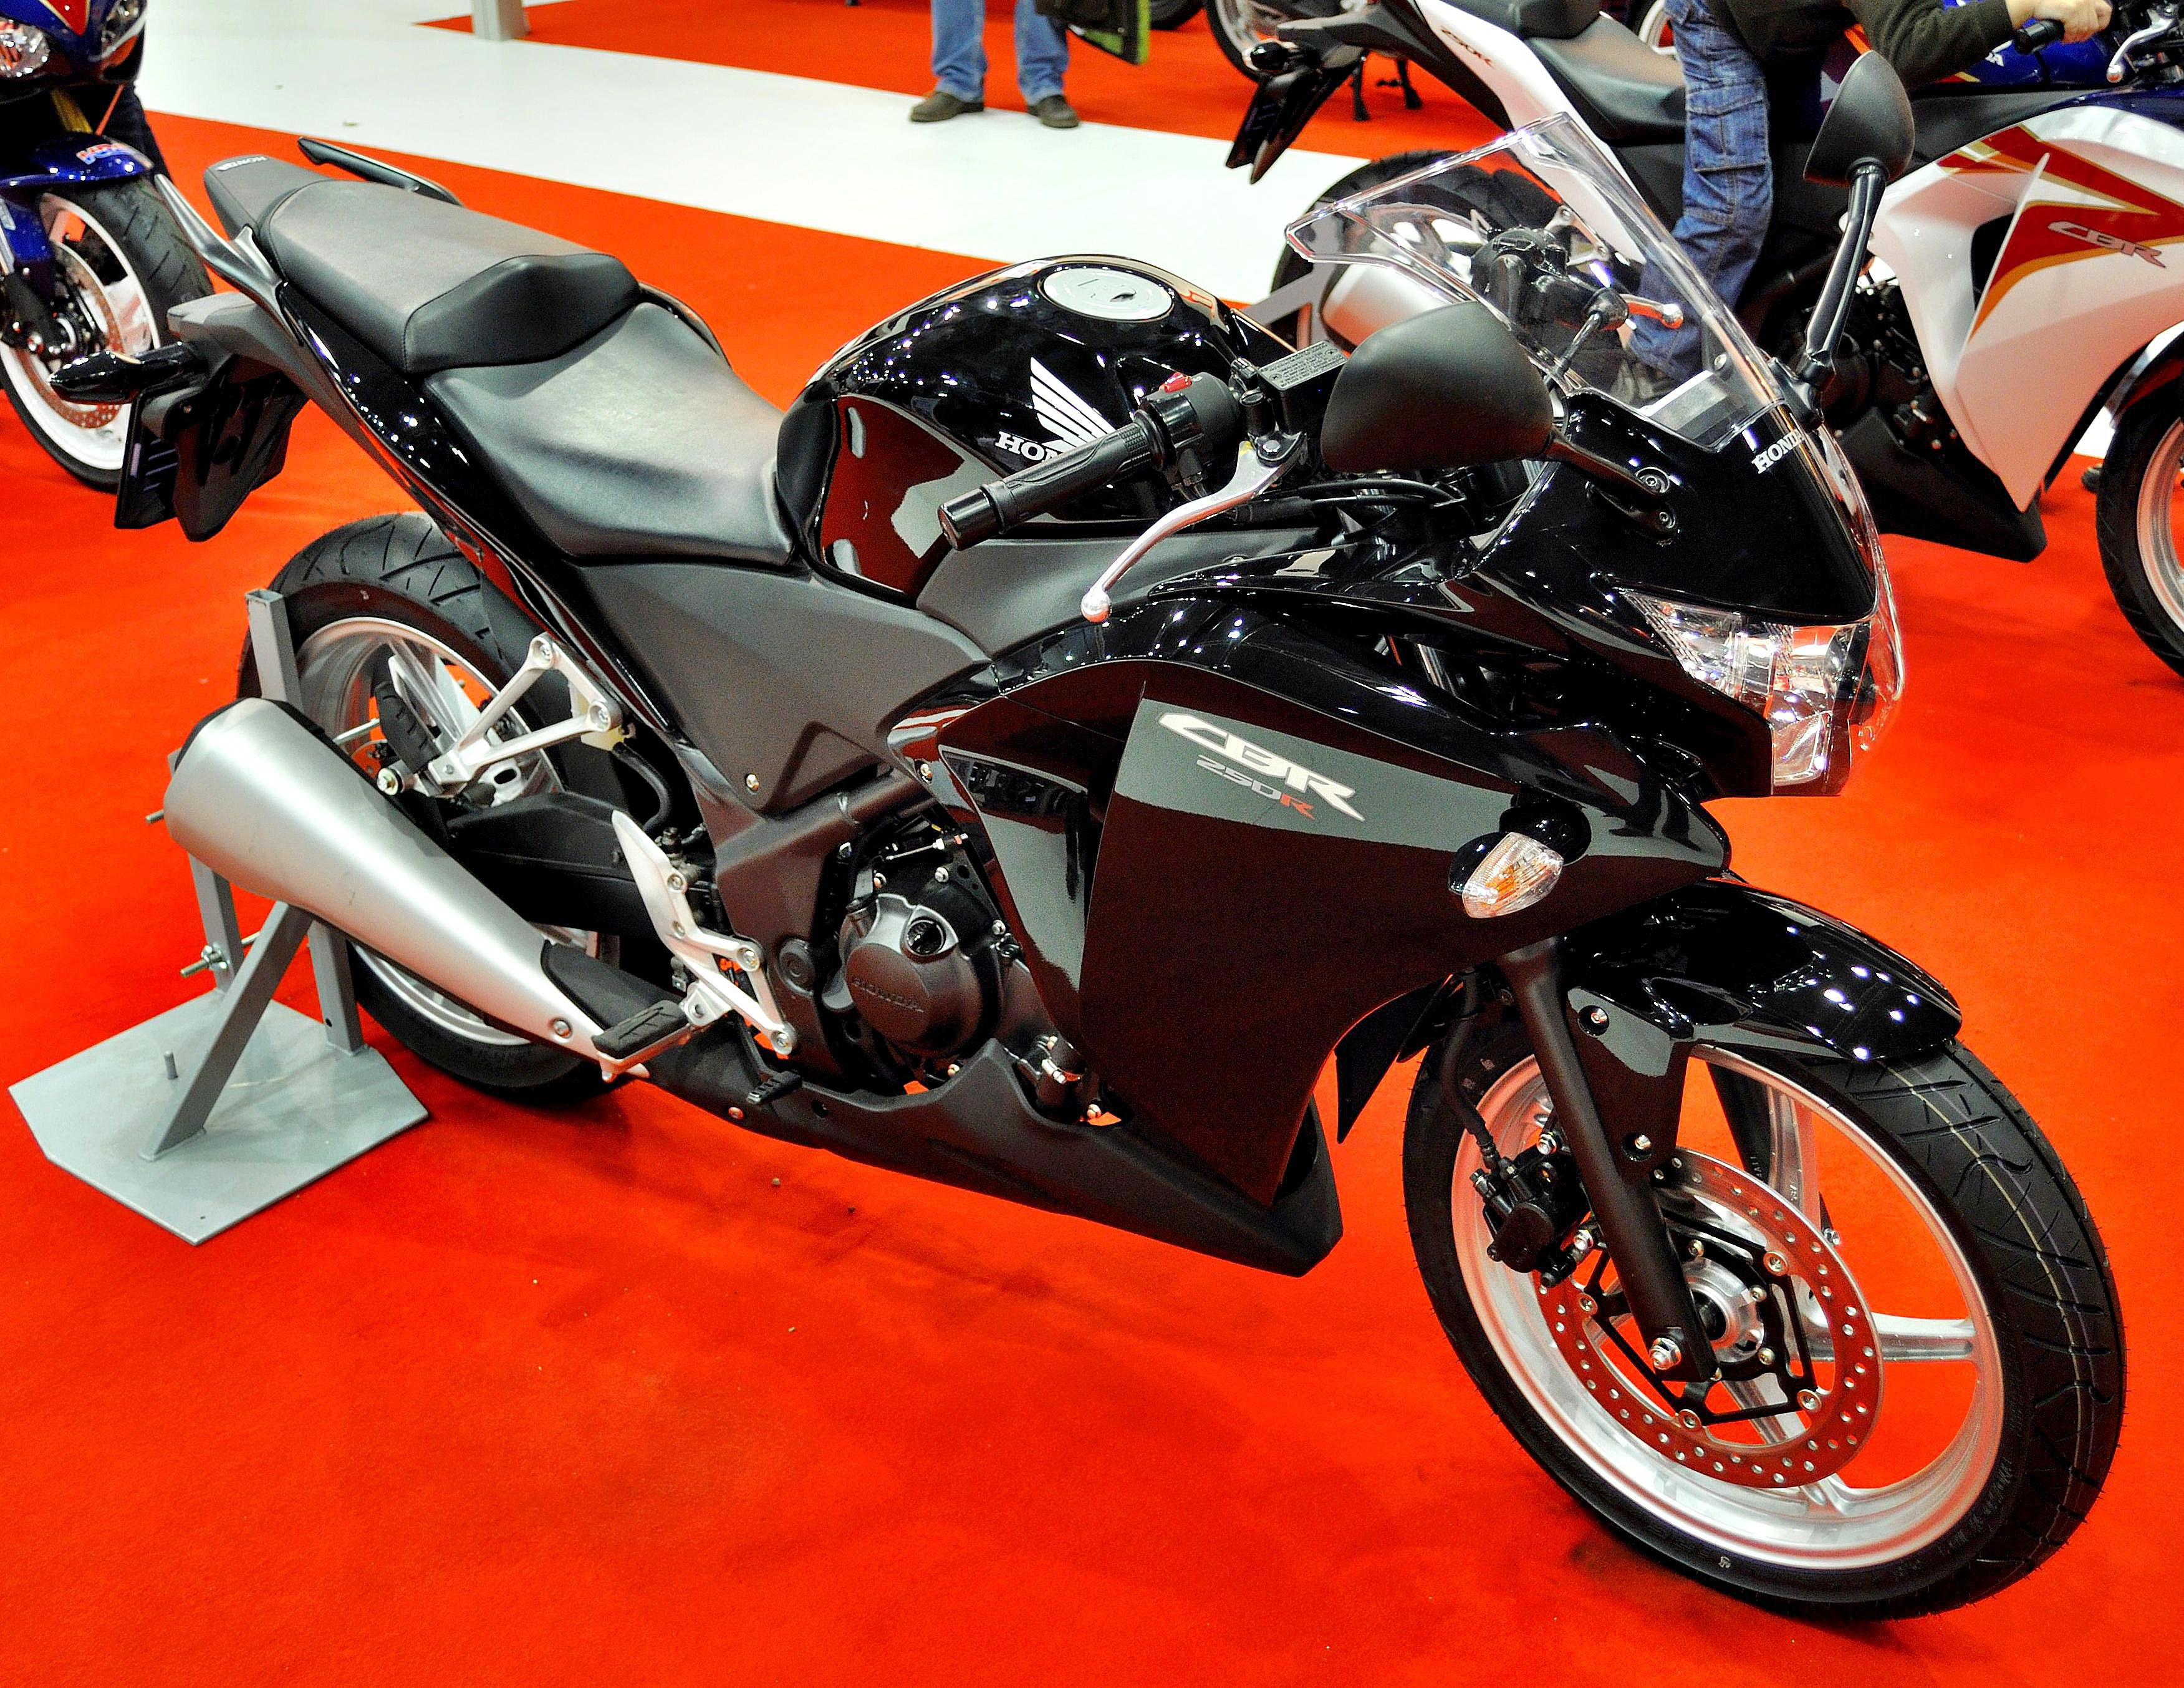 2011 honda cbr250r beginner motorcycle review. Black Bedroom Furniture Sets. Home Design Ideas